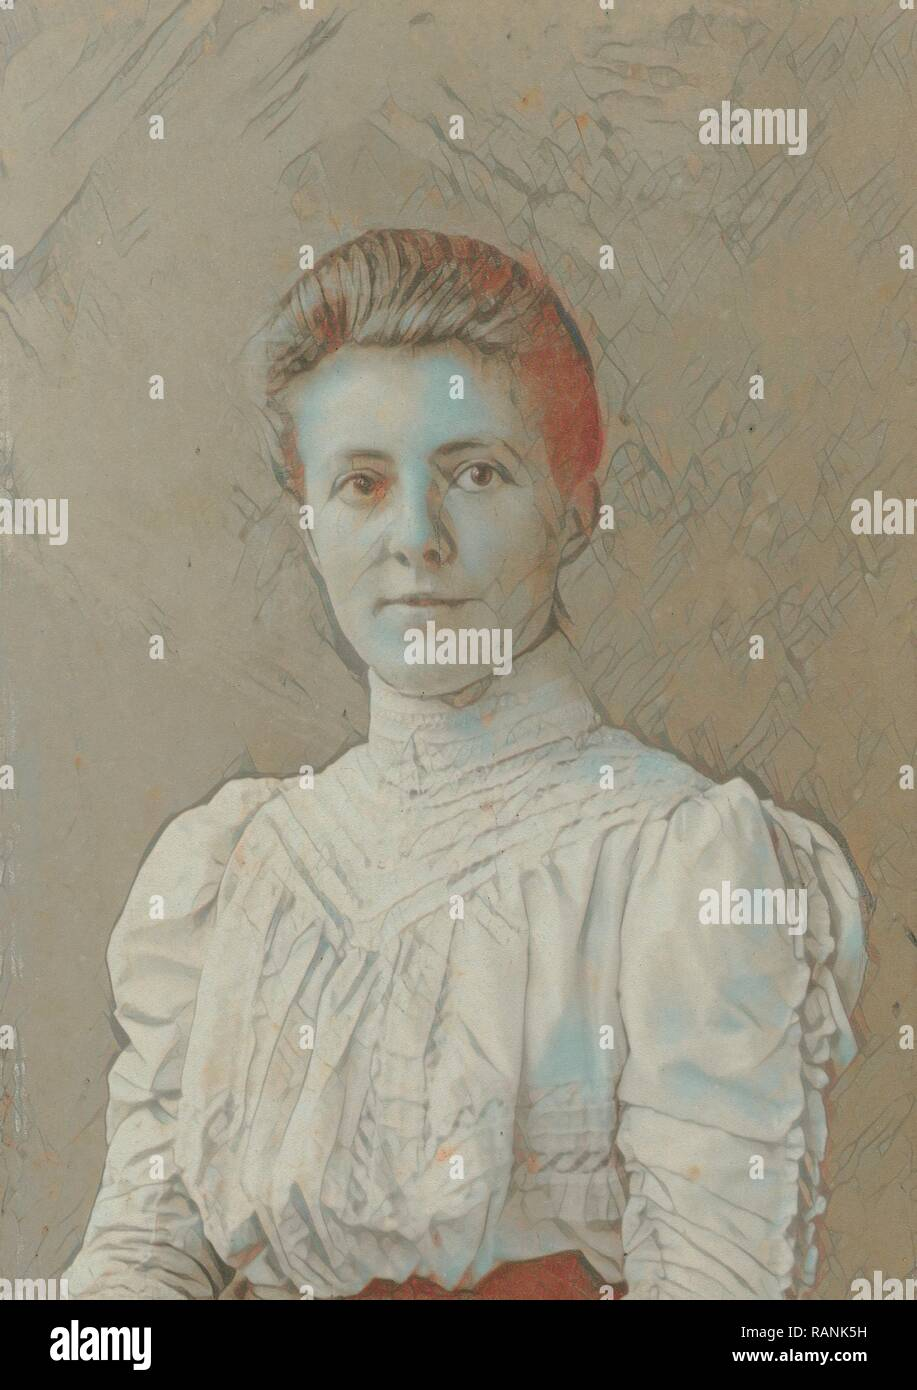 Portrait woman, A.S. Weinberg, 1907. Reimagined by Gibon. Classic art with a modern twist reimagined Stock Photo